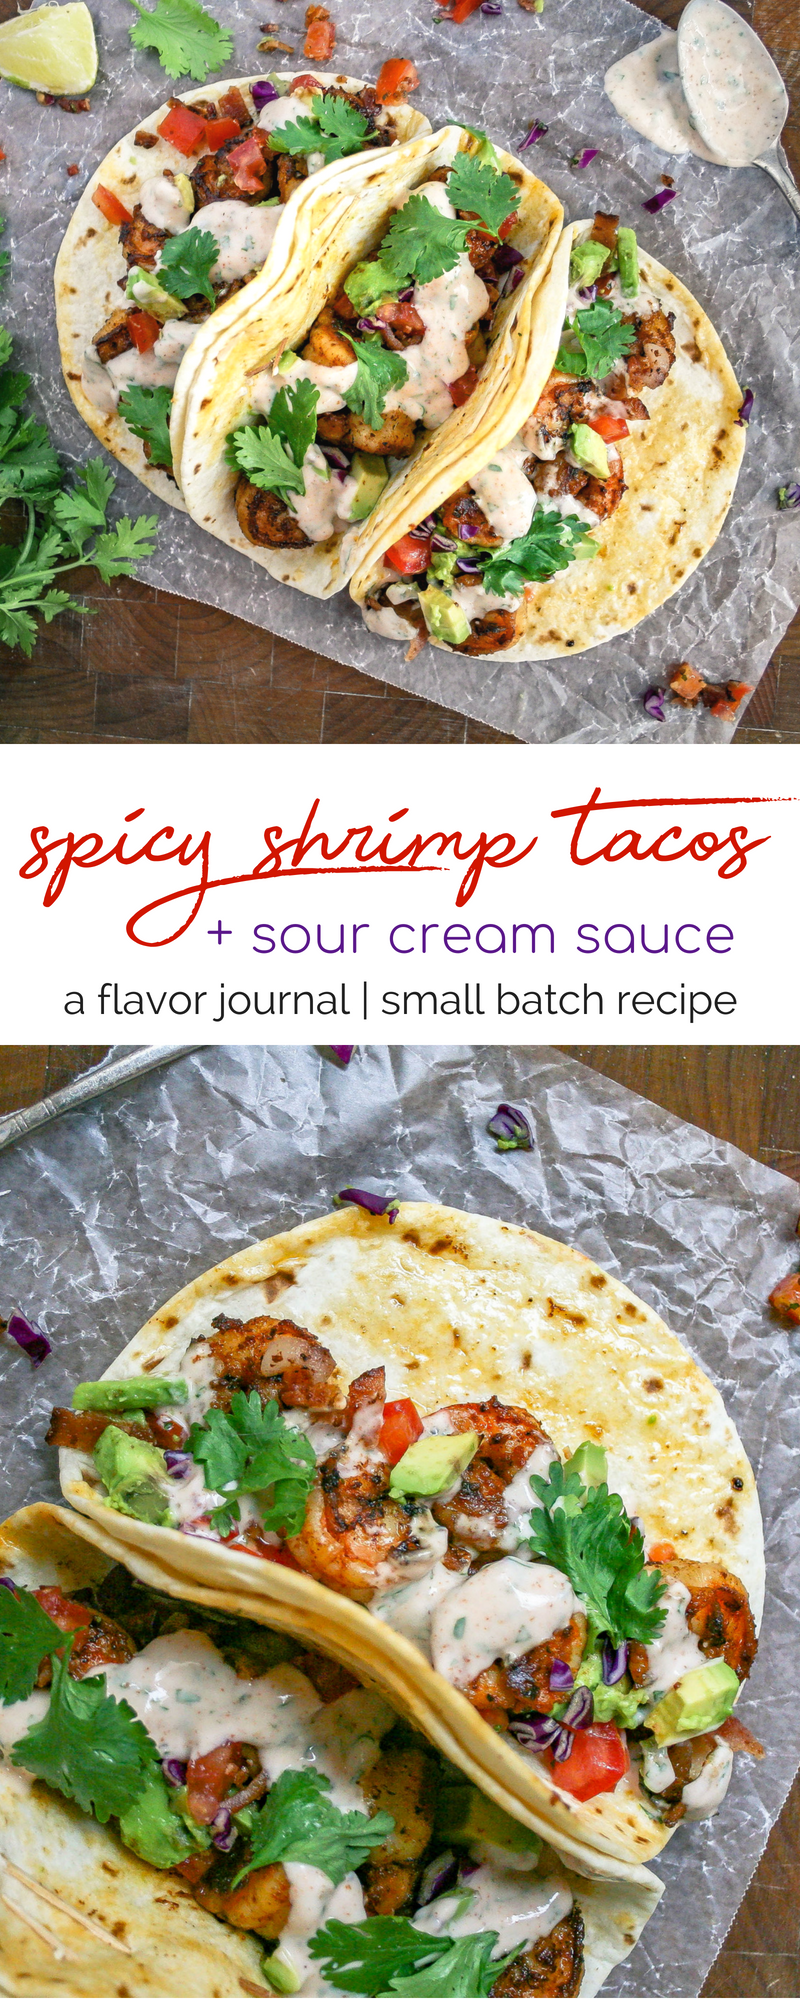 these tacos are stuffed with spicy shrimp, crumbled bacon, avocado, and tomatoes - then drizzled with a cool and creamy sour cream cilantro sauce. it's the perfect weeknight taco option! spicy shrimp tacos with sour cream cilantro sauce | a flavor journal small batch recipe #cilantrosauce